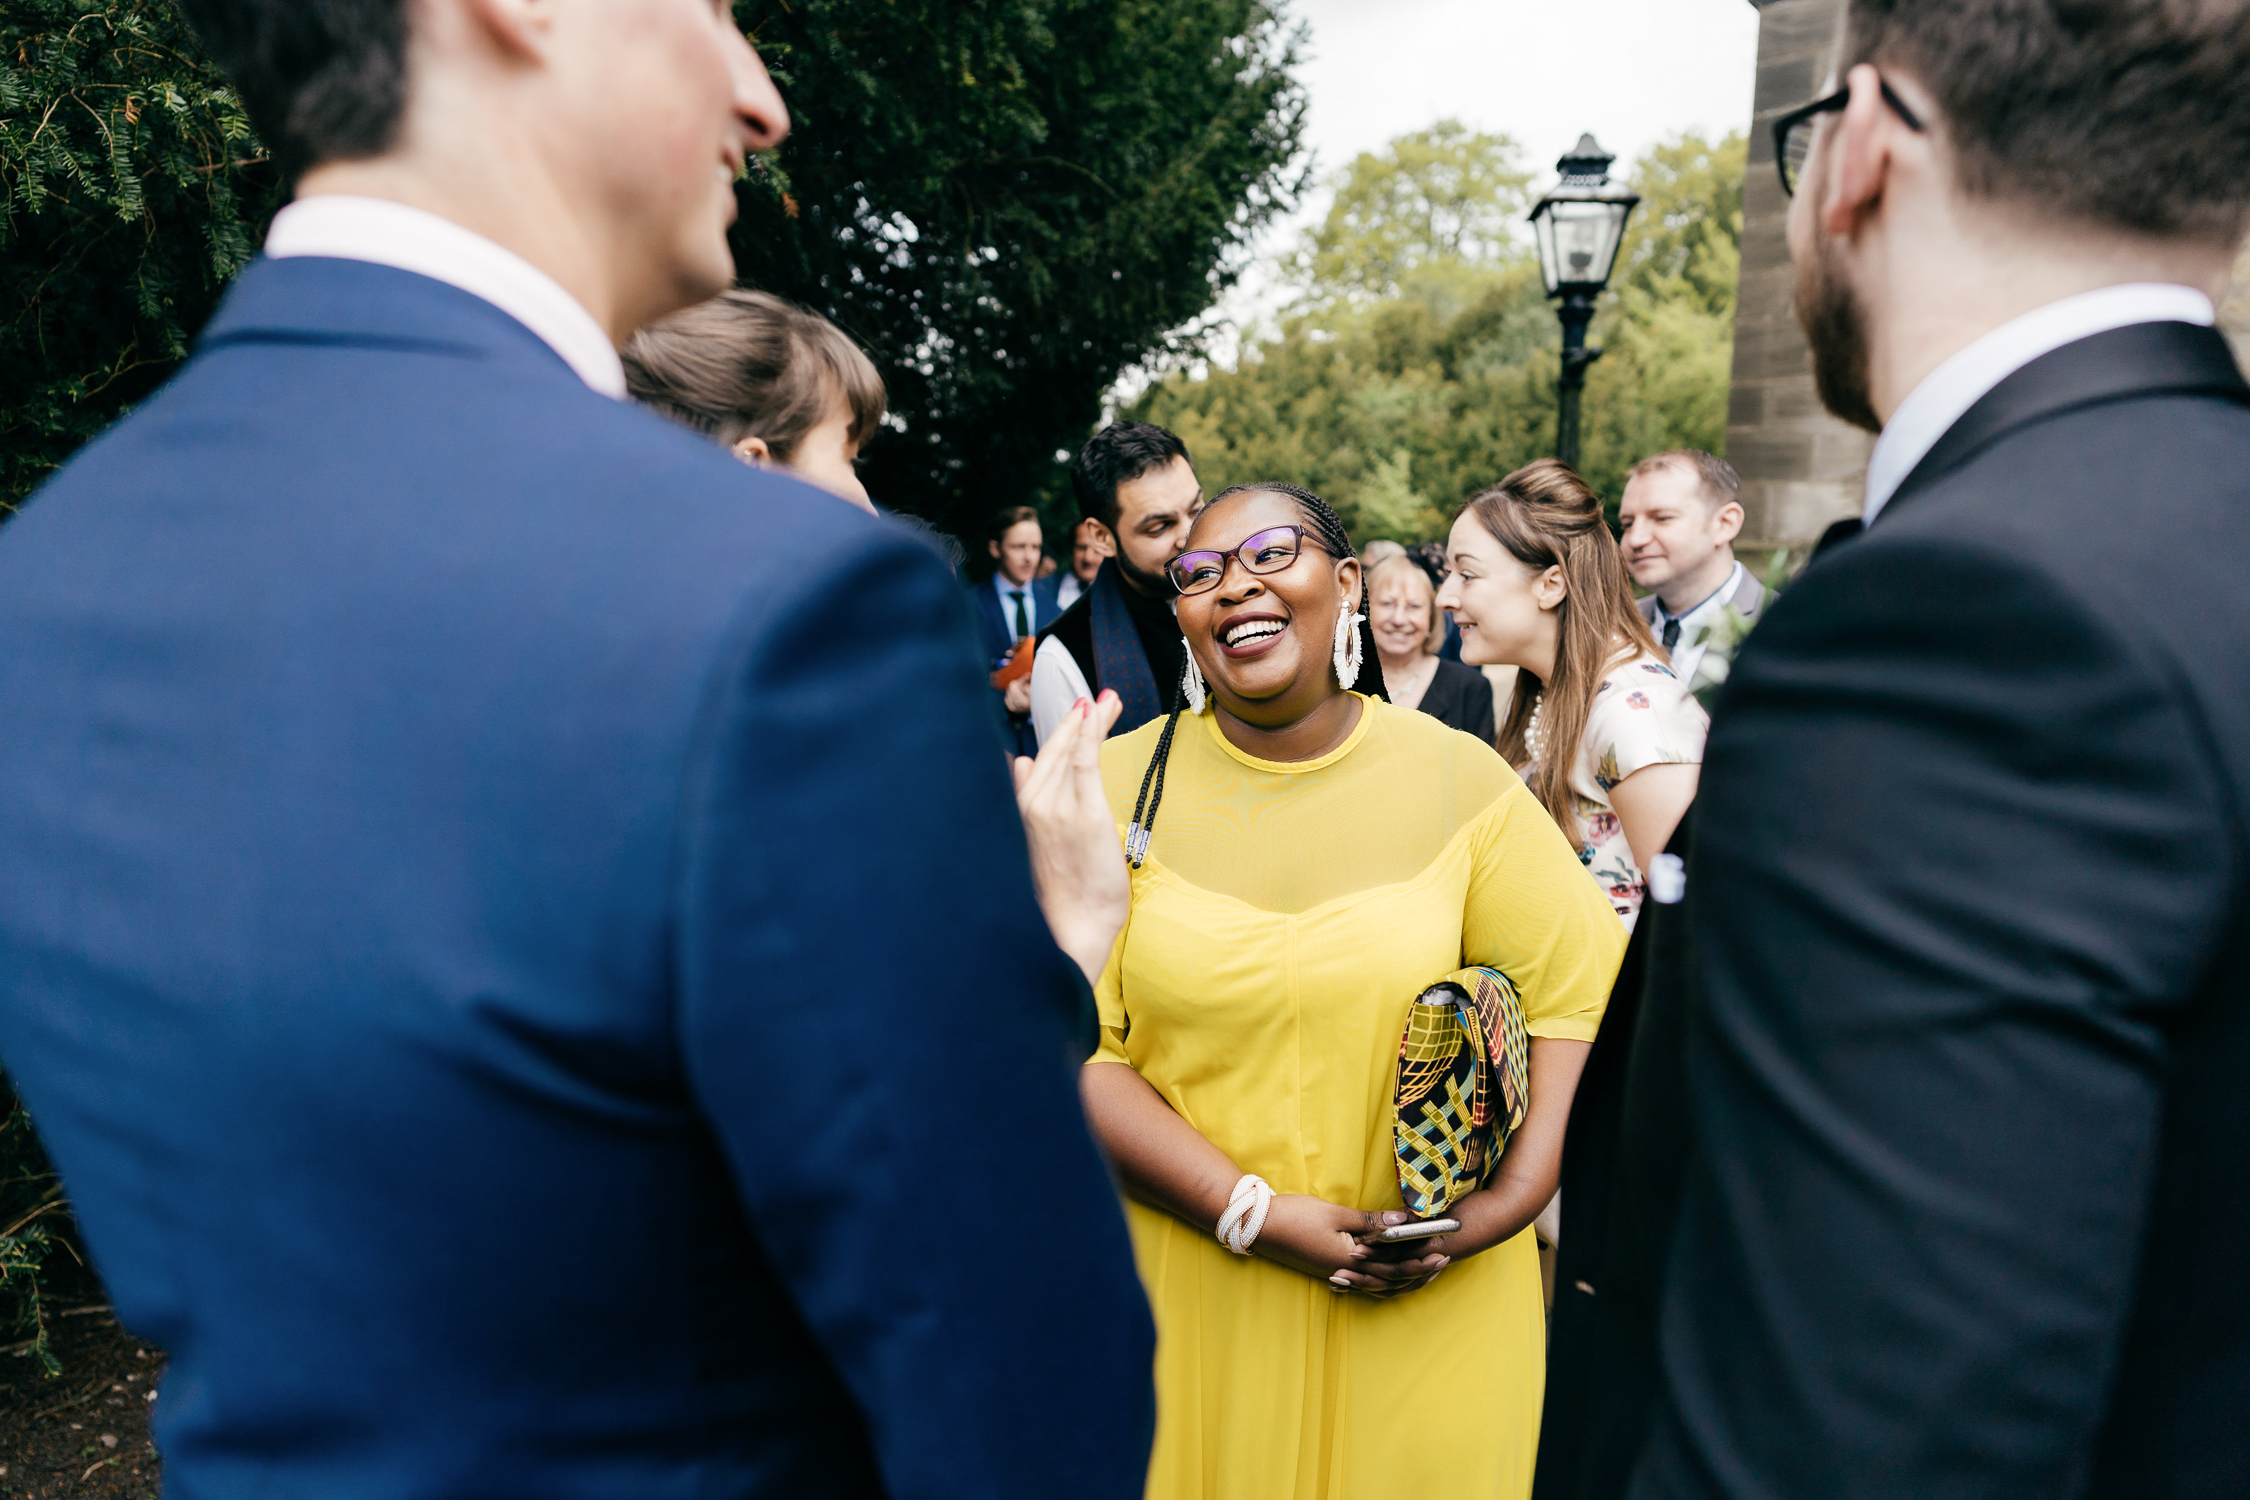 candid wedding photo of a happy guest at wedding reception